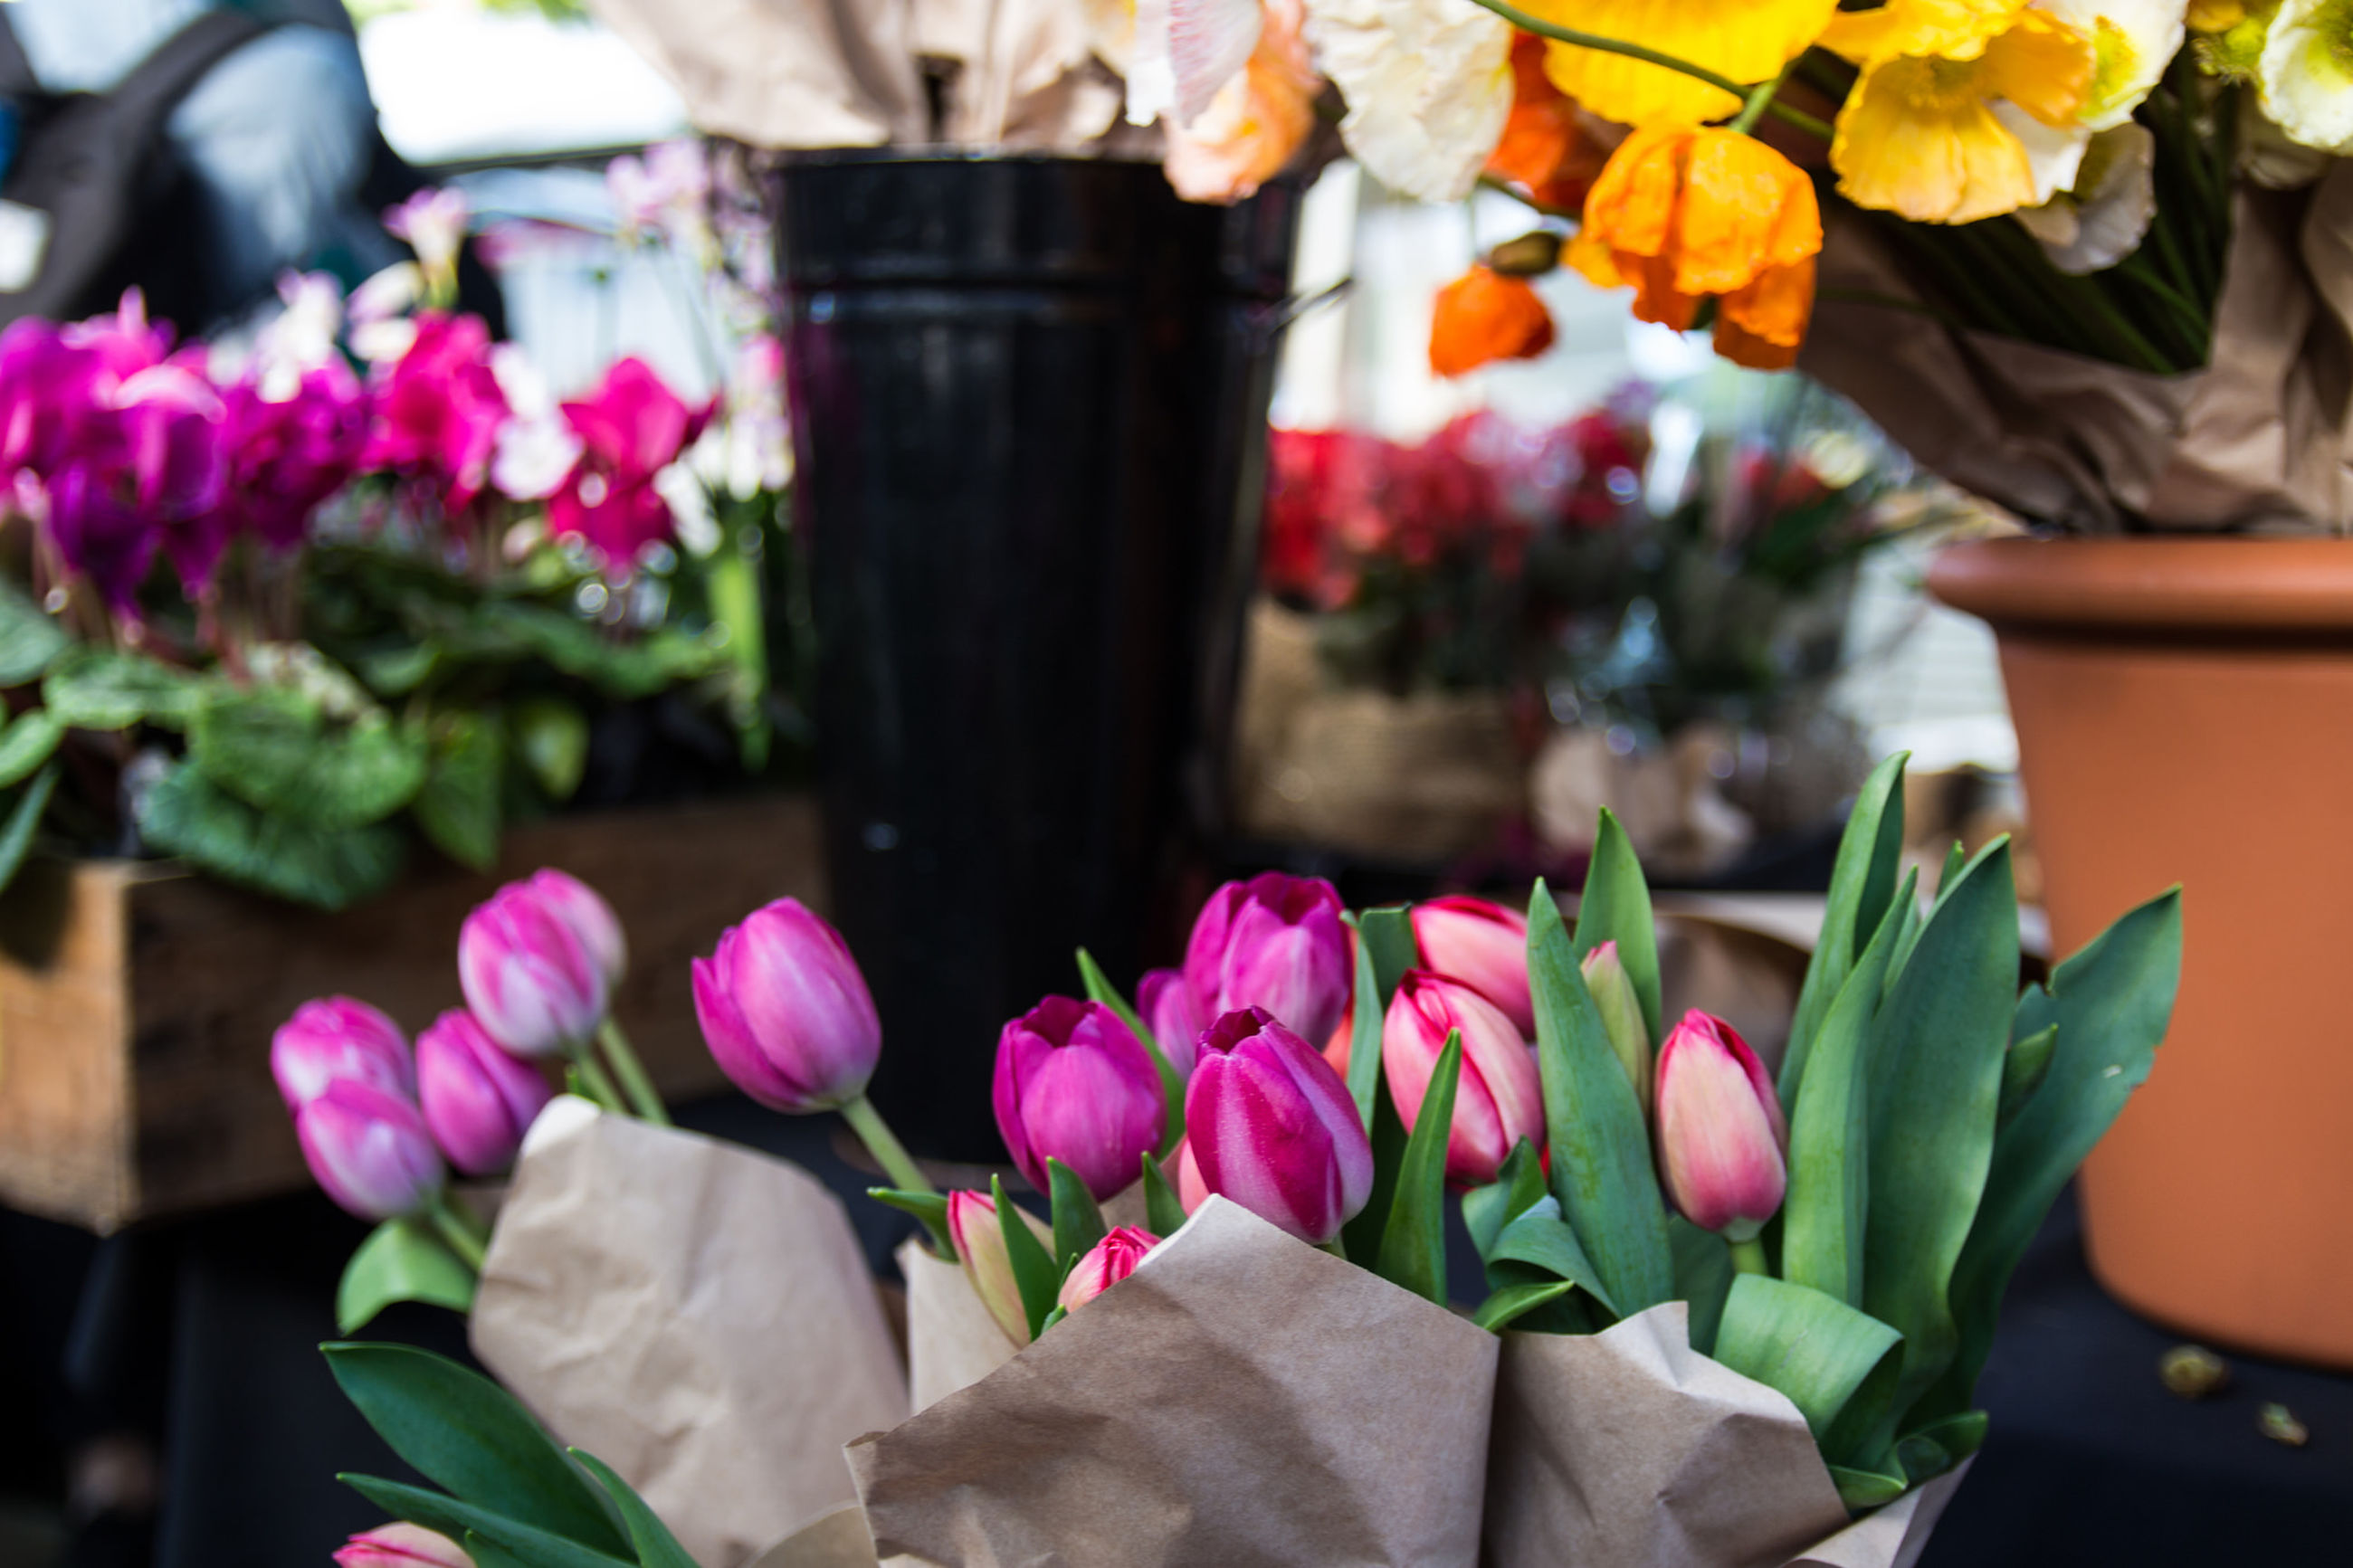 Close-up of tulips wrapped in paper in market